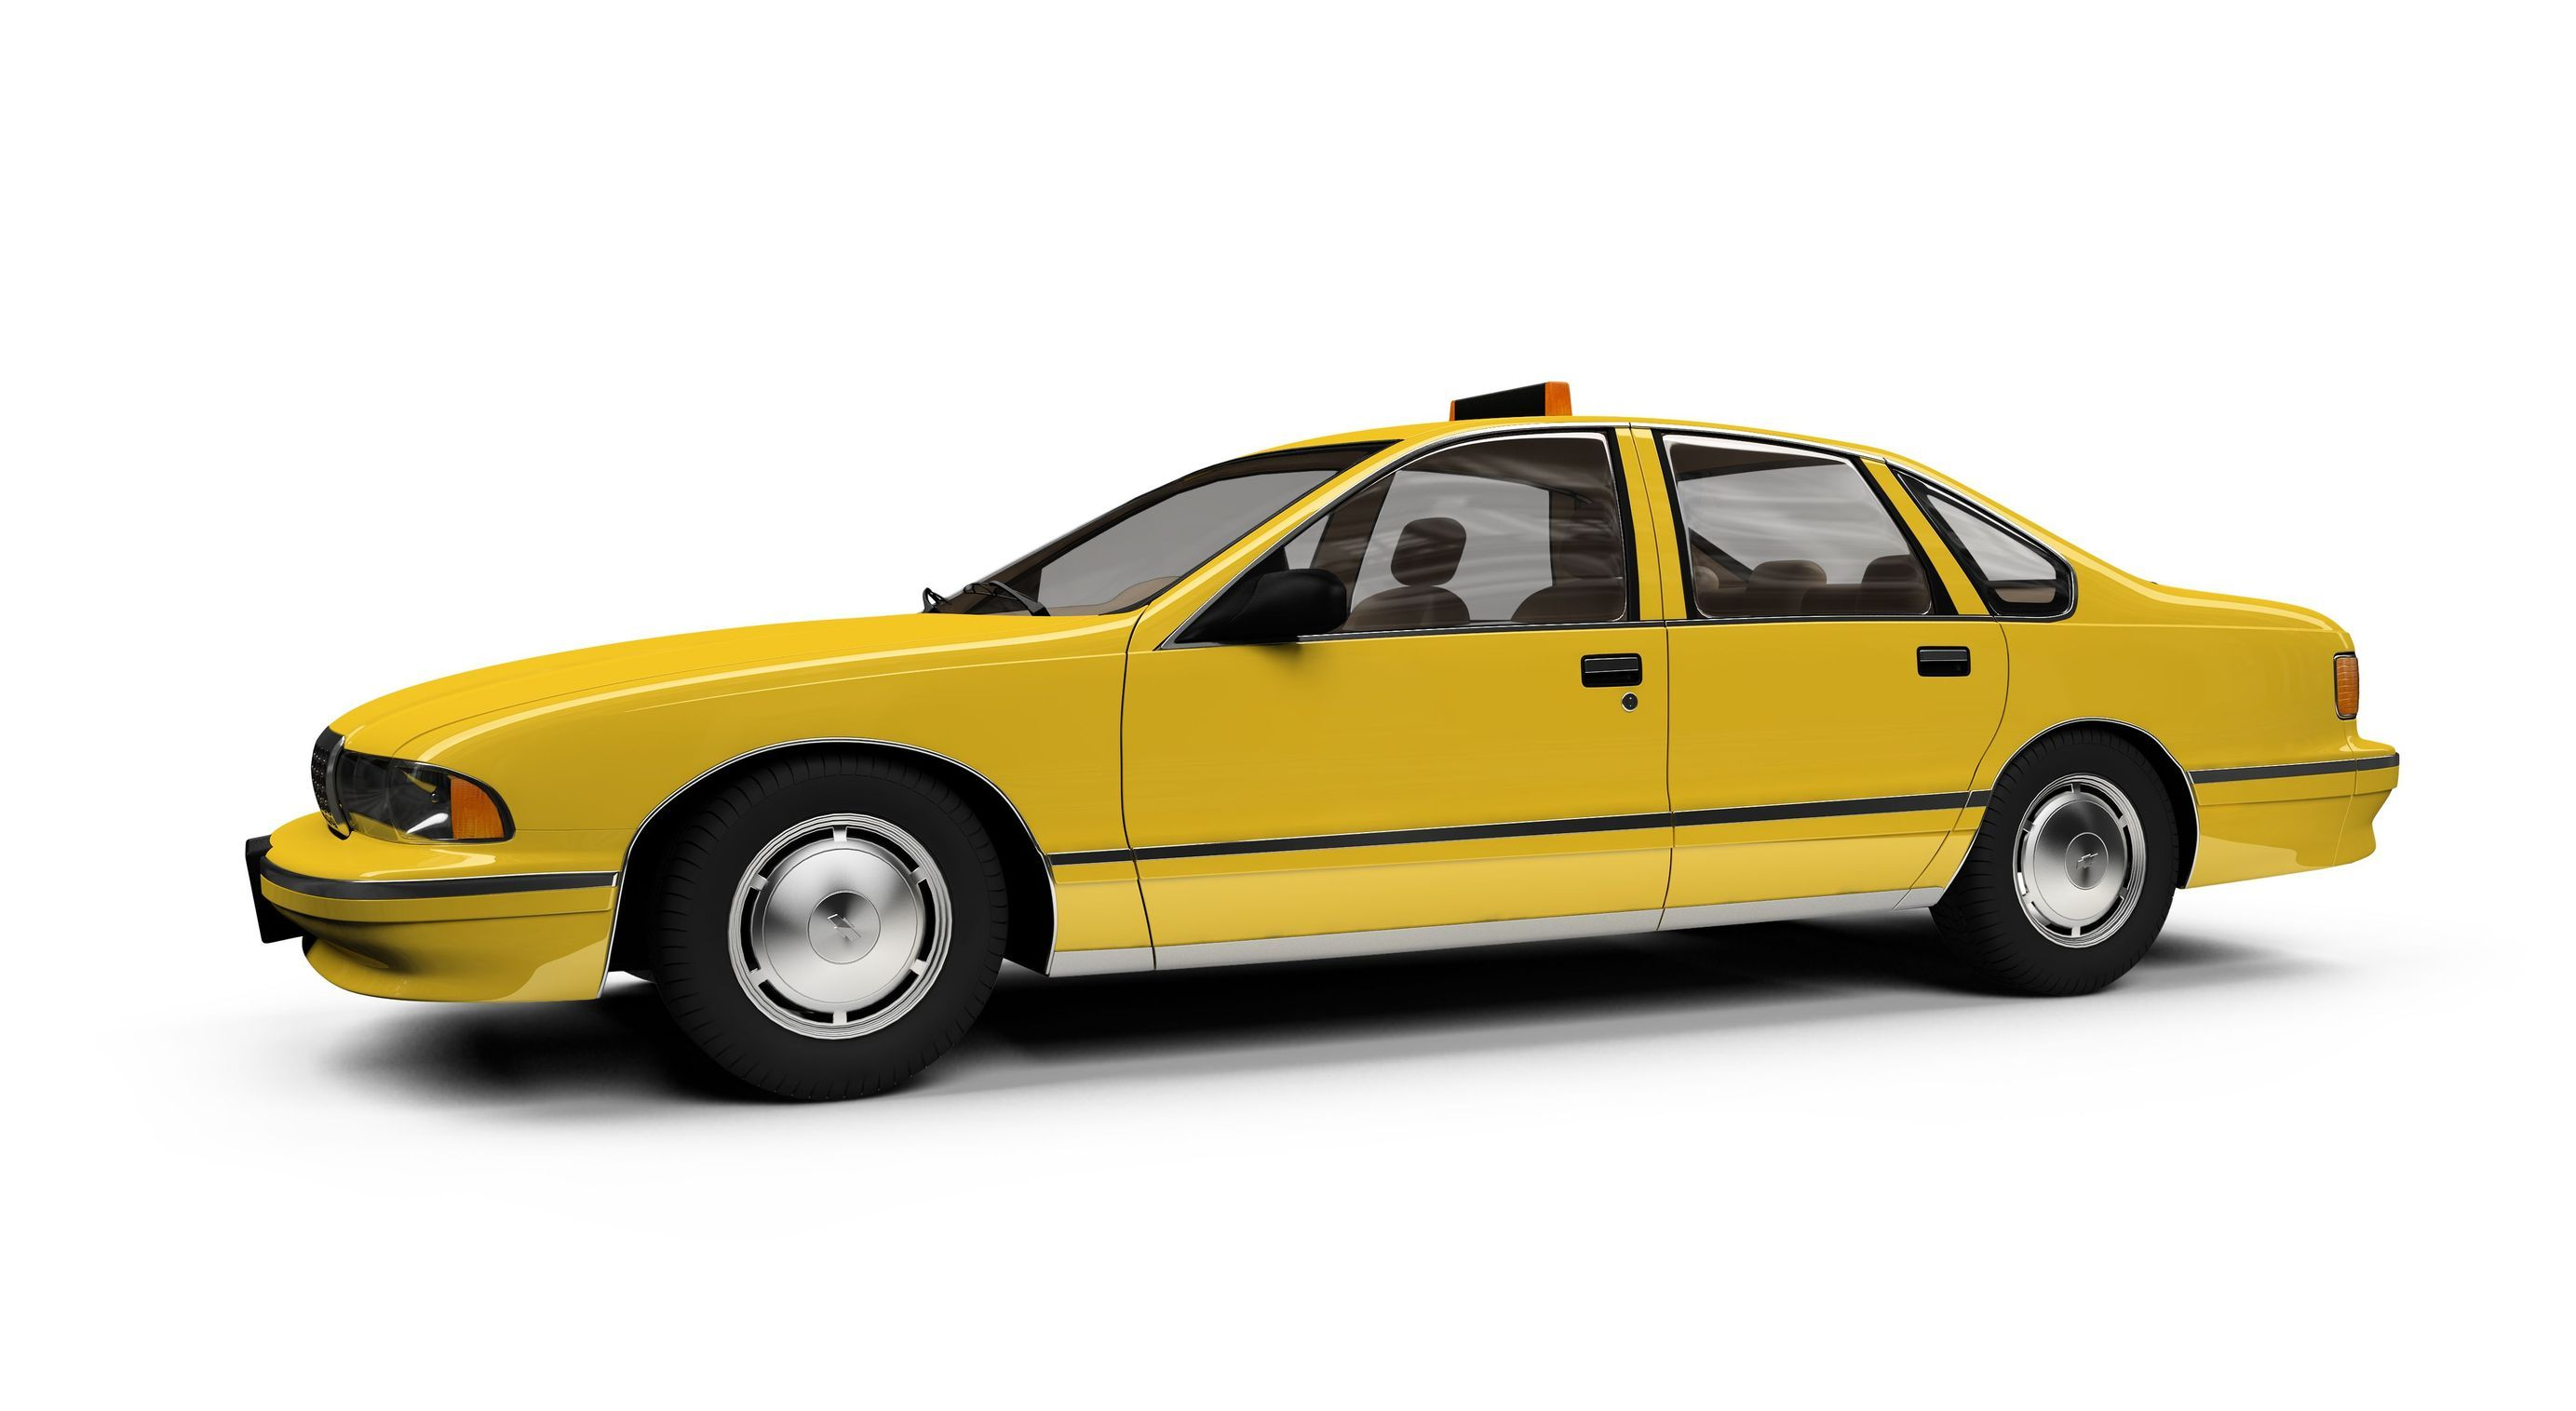 For New York Airport Yellow Taxi cab service Taxi